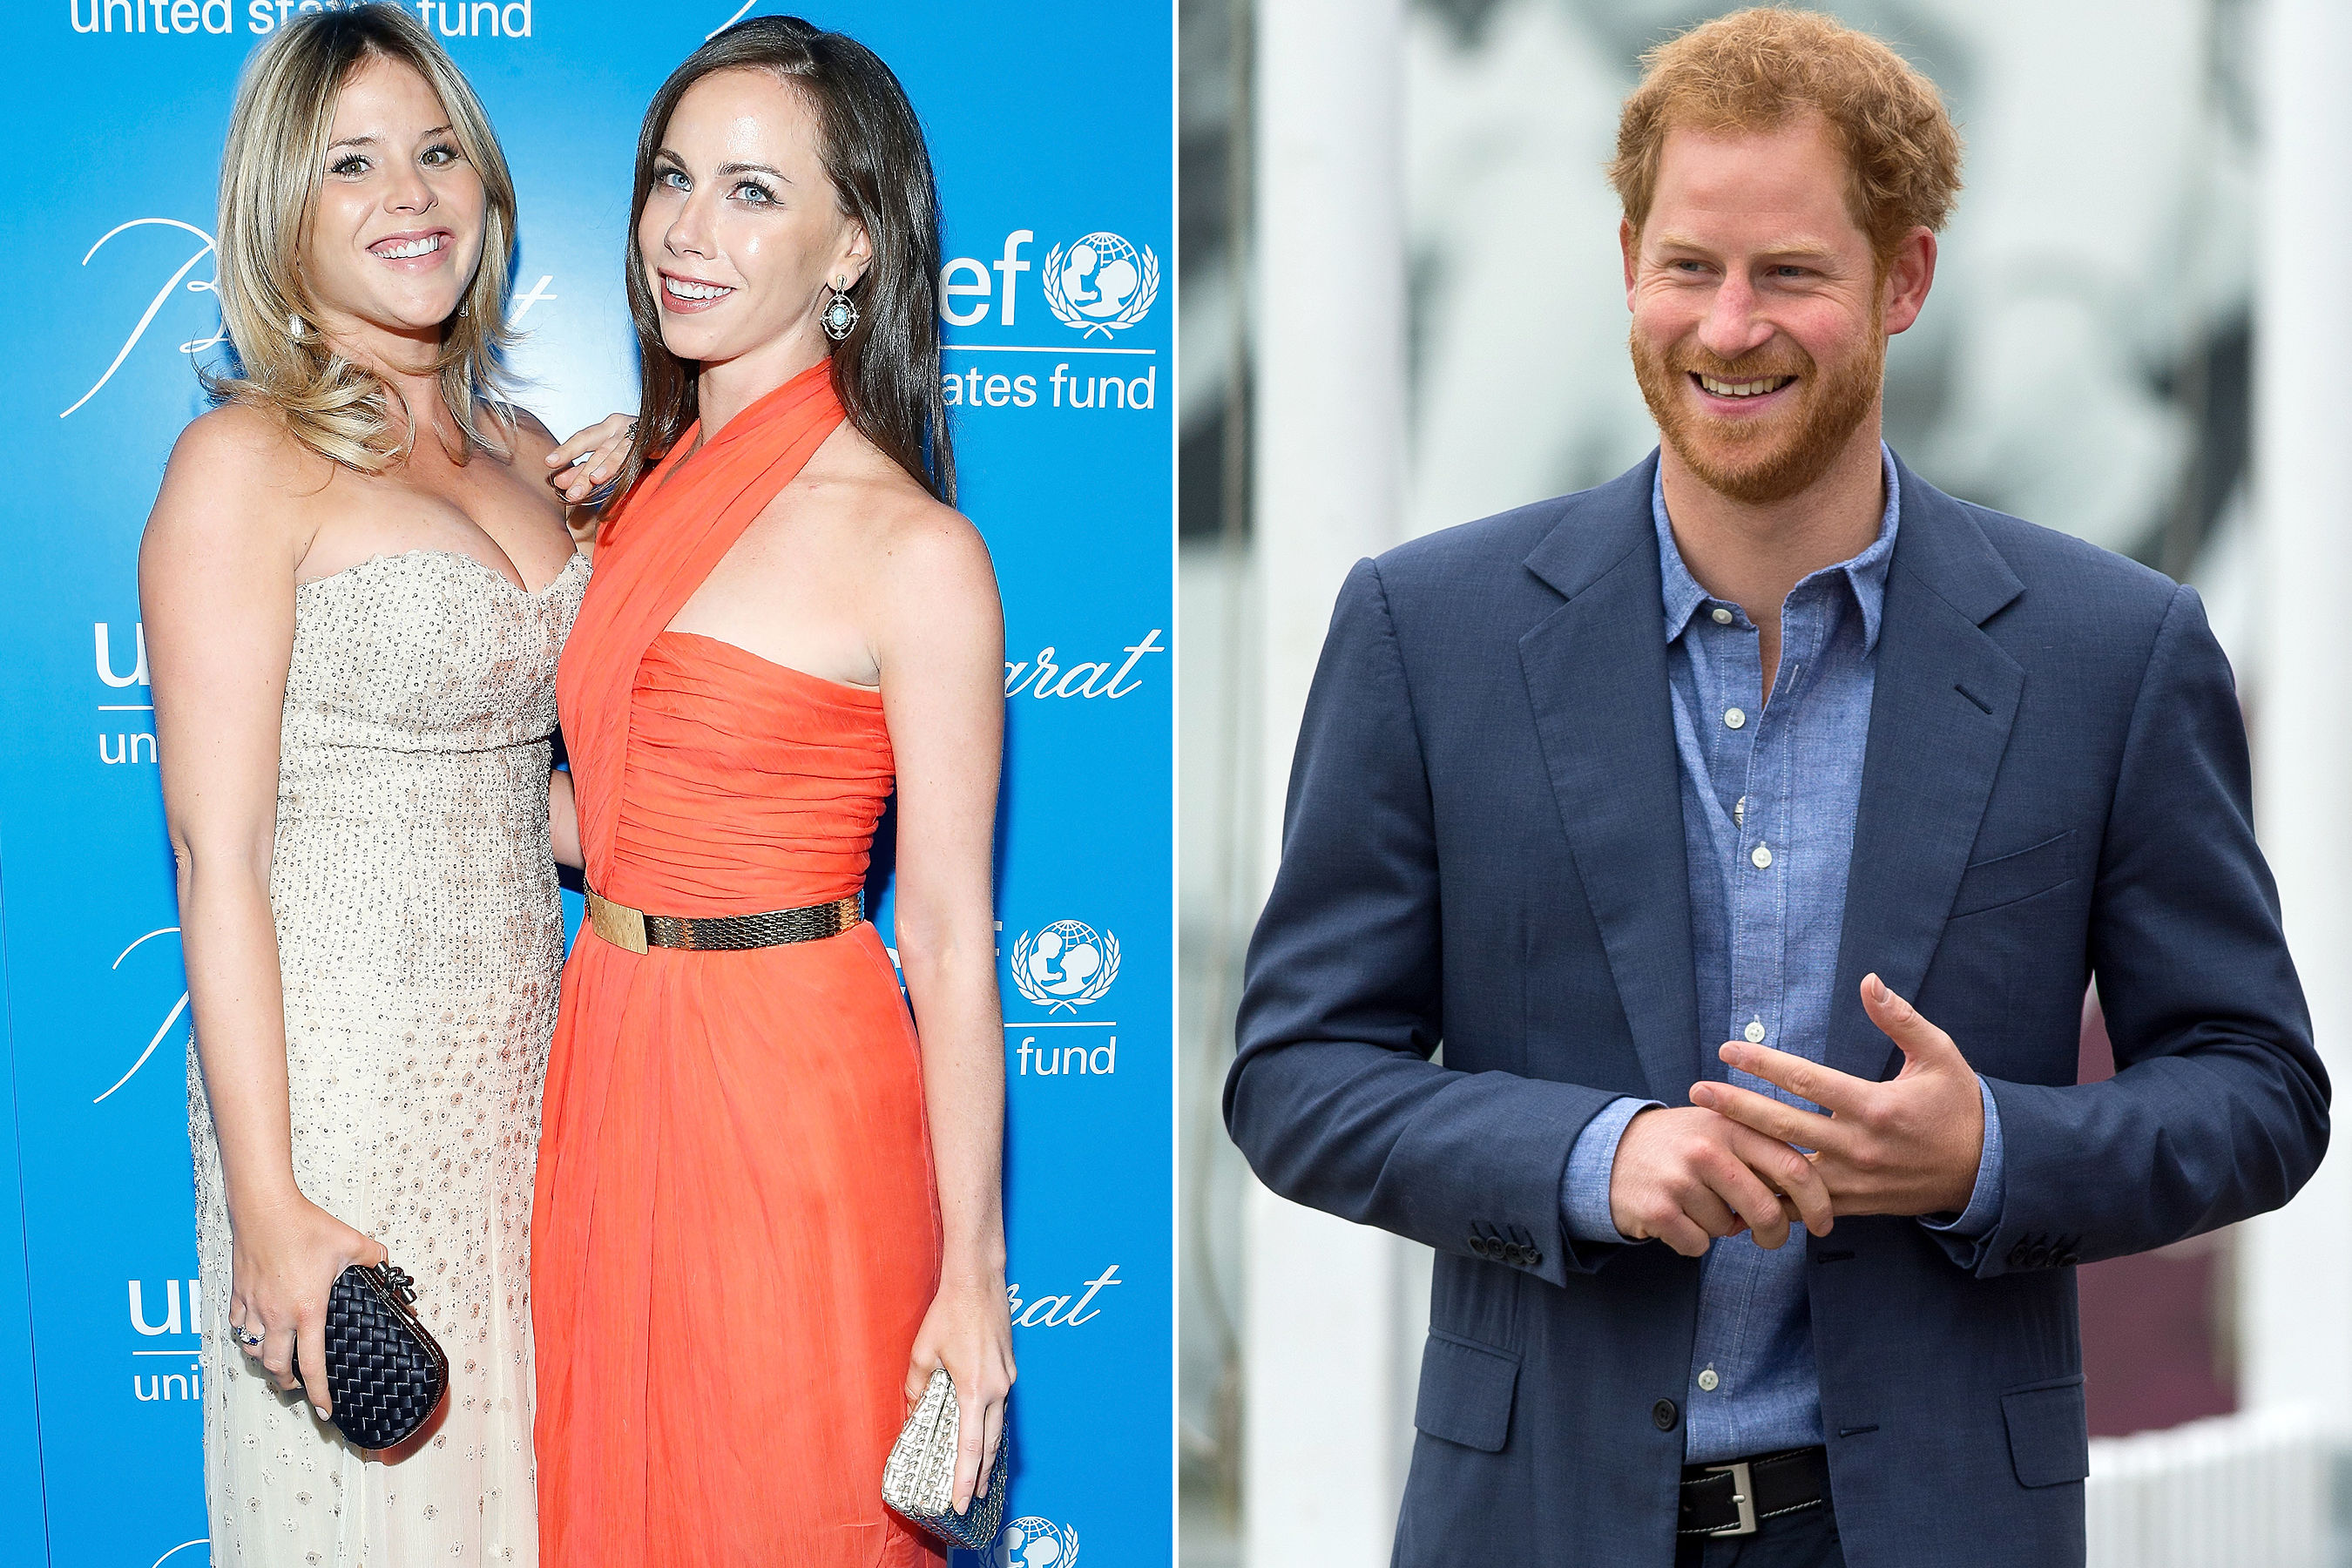 Jenna Bush Hager Blames Sunglasses for Failed Matchmaking Attempt Between Sister and Prince Harry